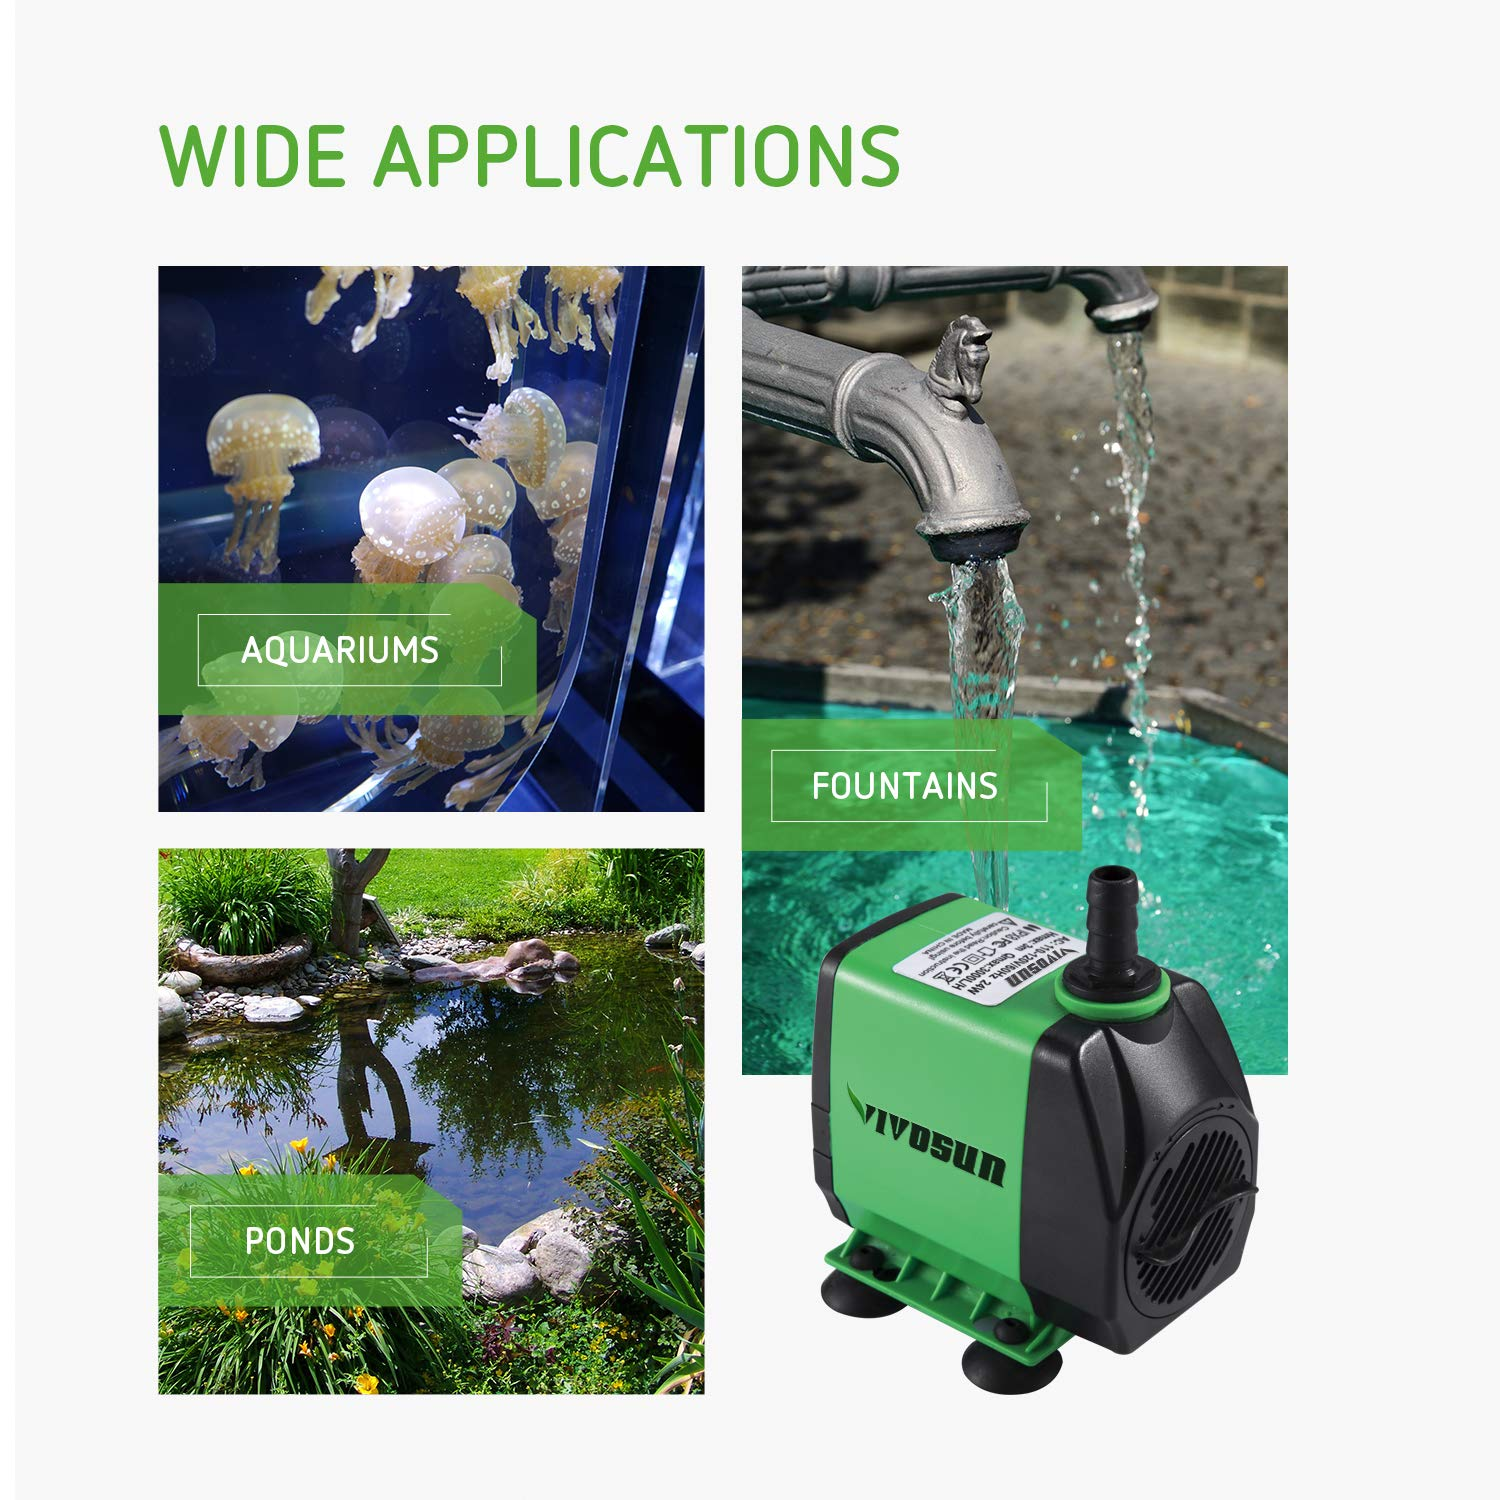 VIVOSUN 800GPH Submersible Pump(3000L/H, 24W), Ultra Quiet Water Pump with 10ft High Lift, Fountain Pump with 5ft Power Cord, 3 Nozzles for Fish Tank, Pond, Aquarium, Statuary, Hydroponics by VIVOSUN (Image #7)